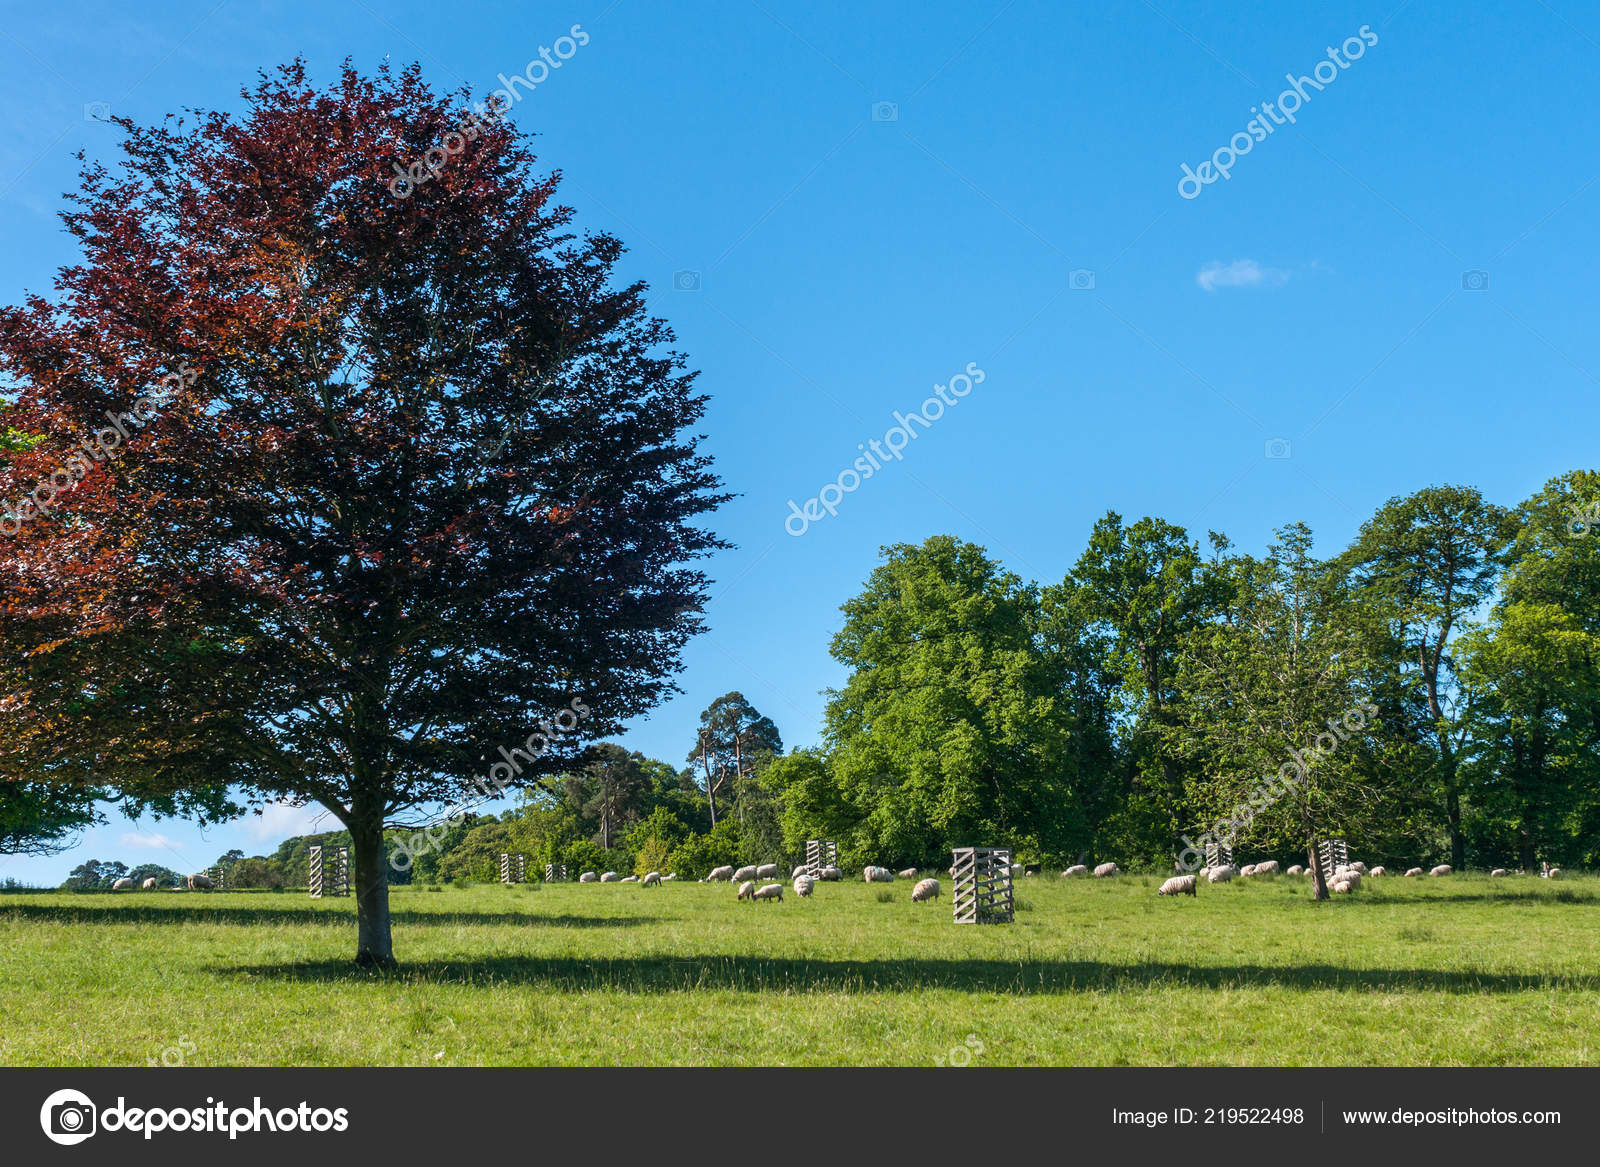 085862712e Cumnock Ayrshire Scotland June 2012 Bucolic Scene White Sheep Grazing —  Stock Photo